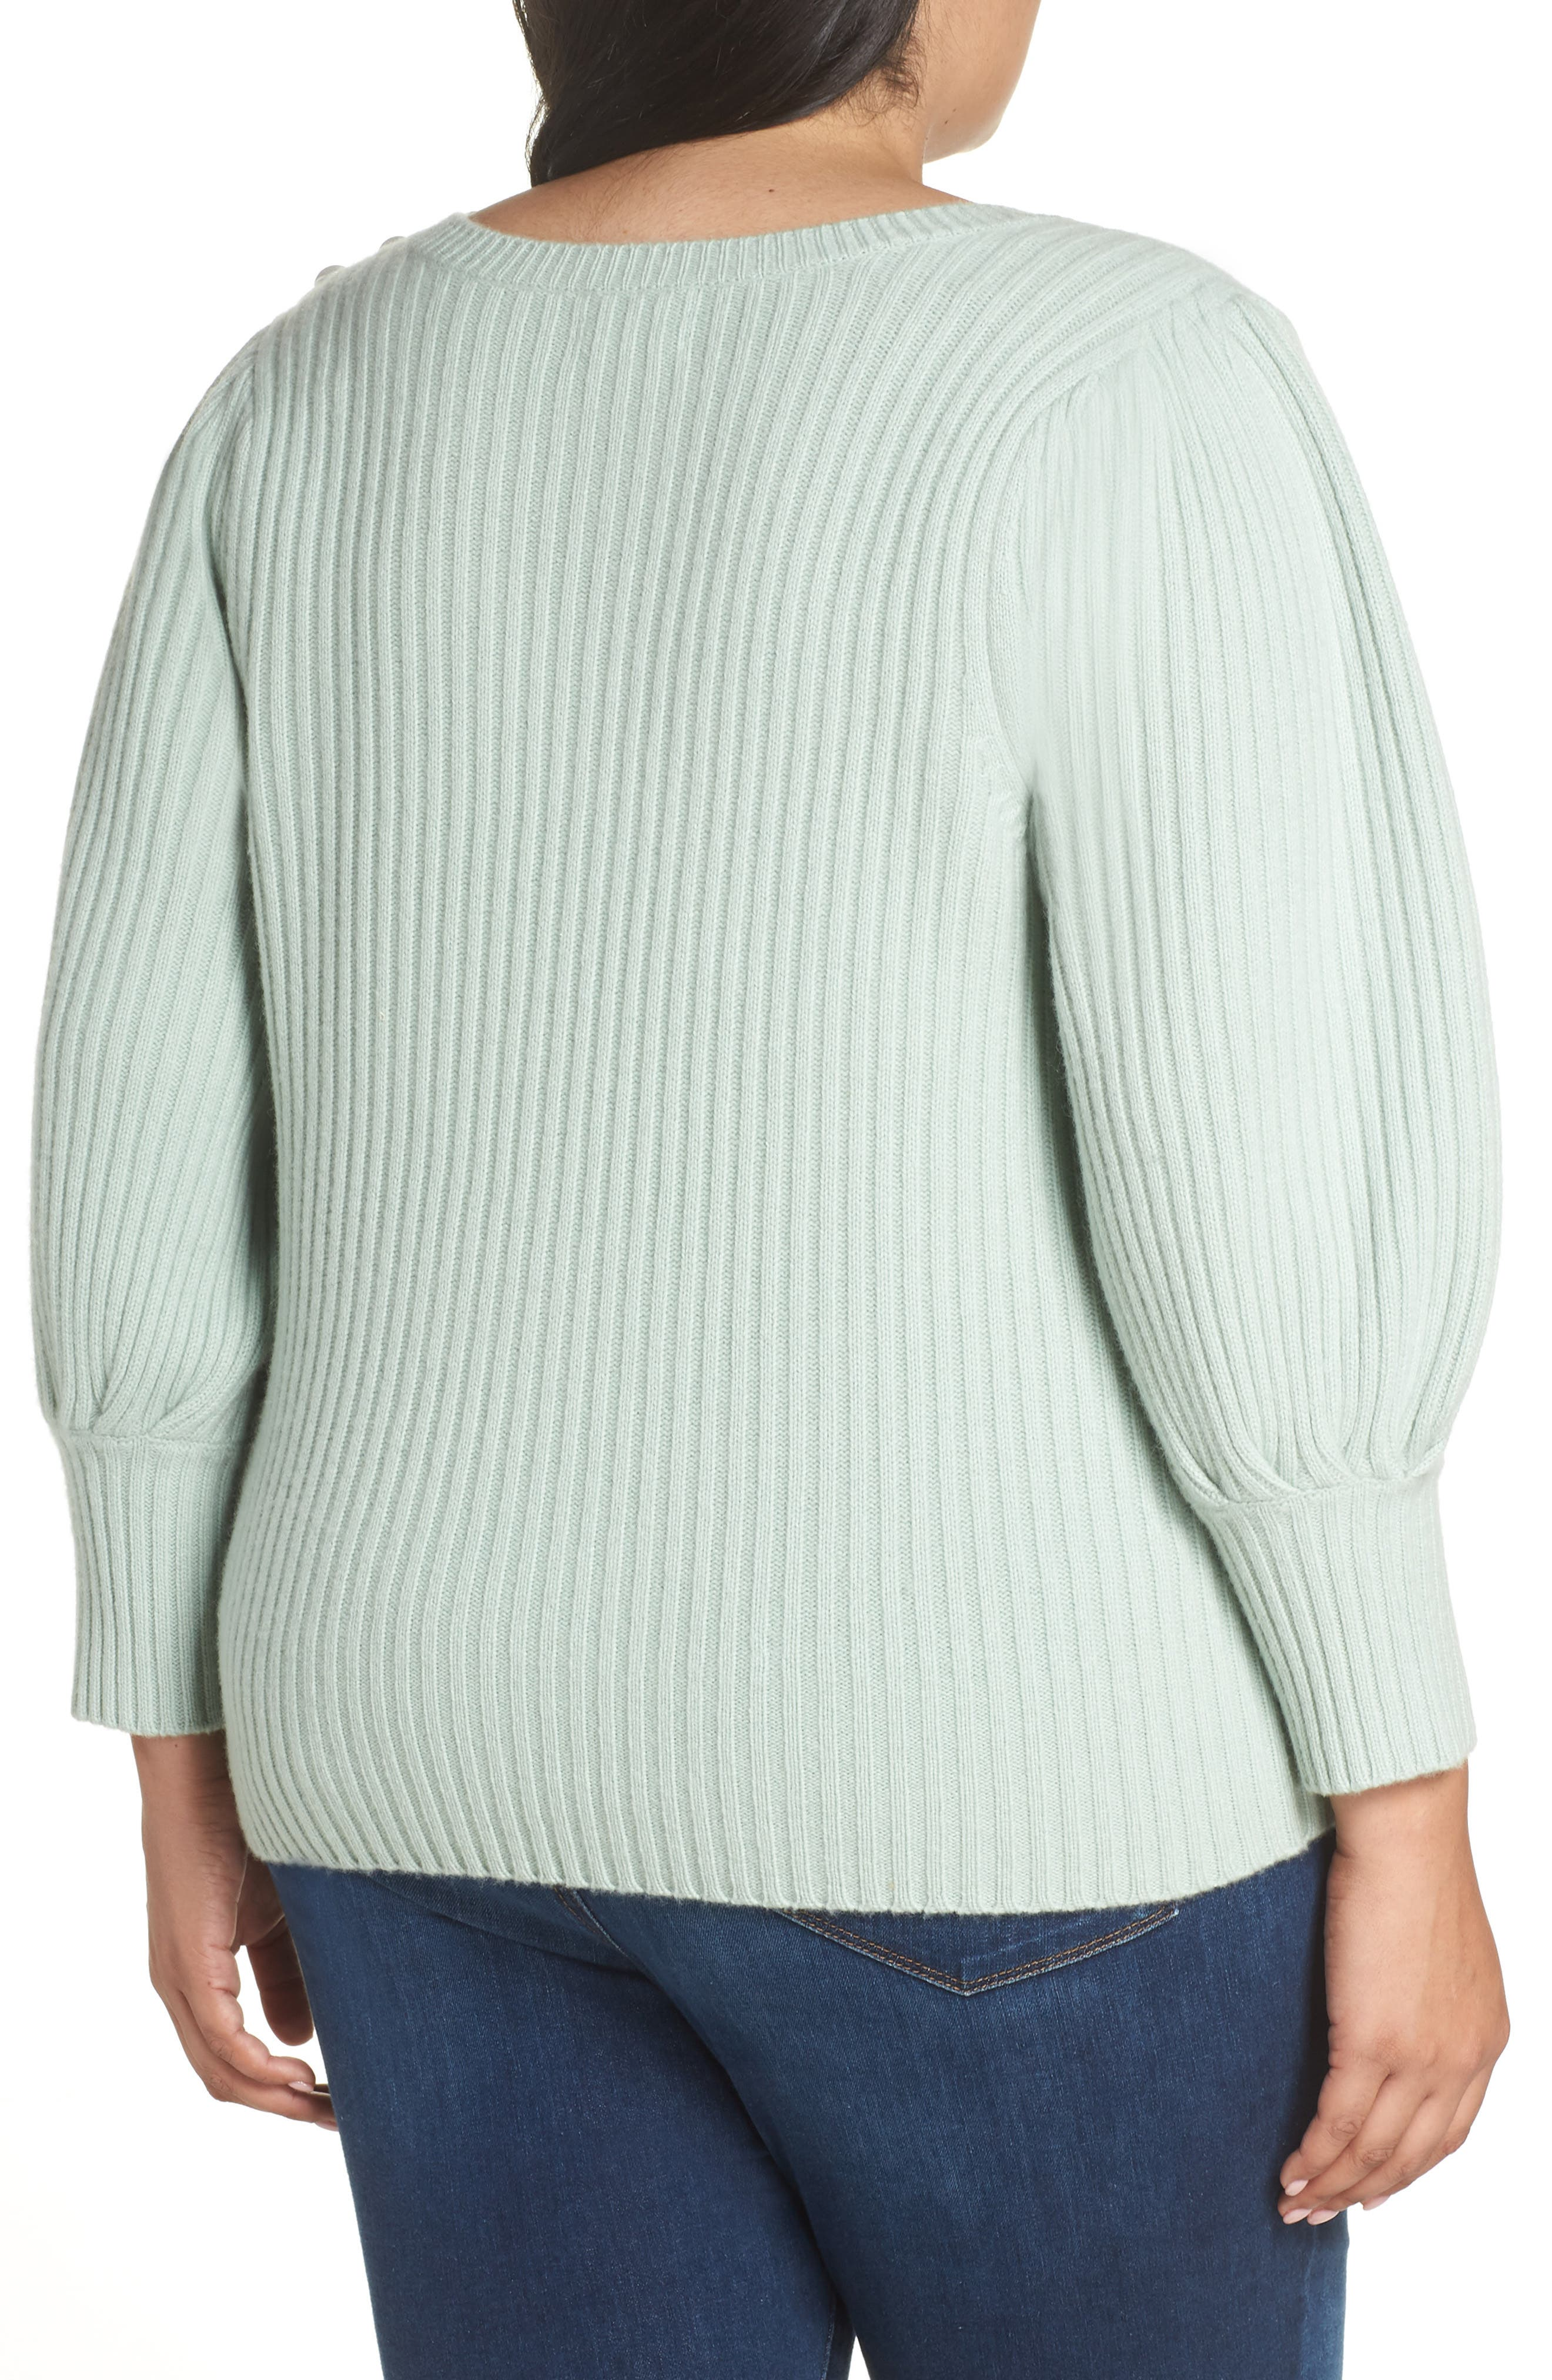 x Atlantic-Pacific Balloon Sleeve Wool & Cashmere Sweater,                             Alternate thumbnail 2, color,                             330